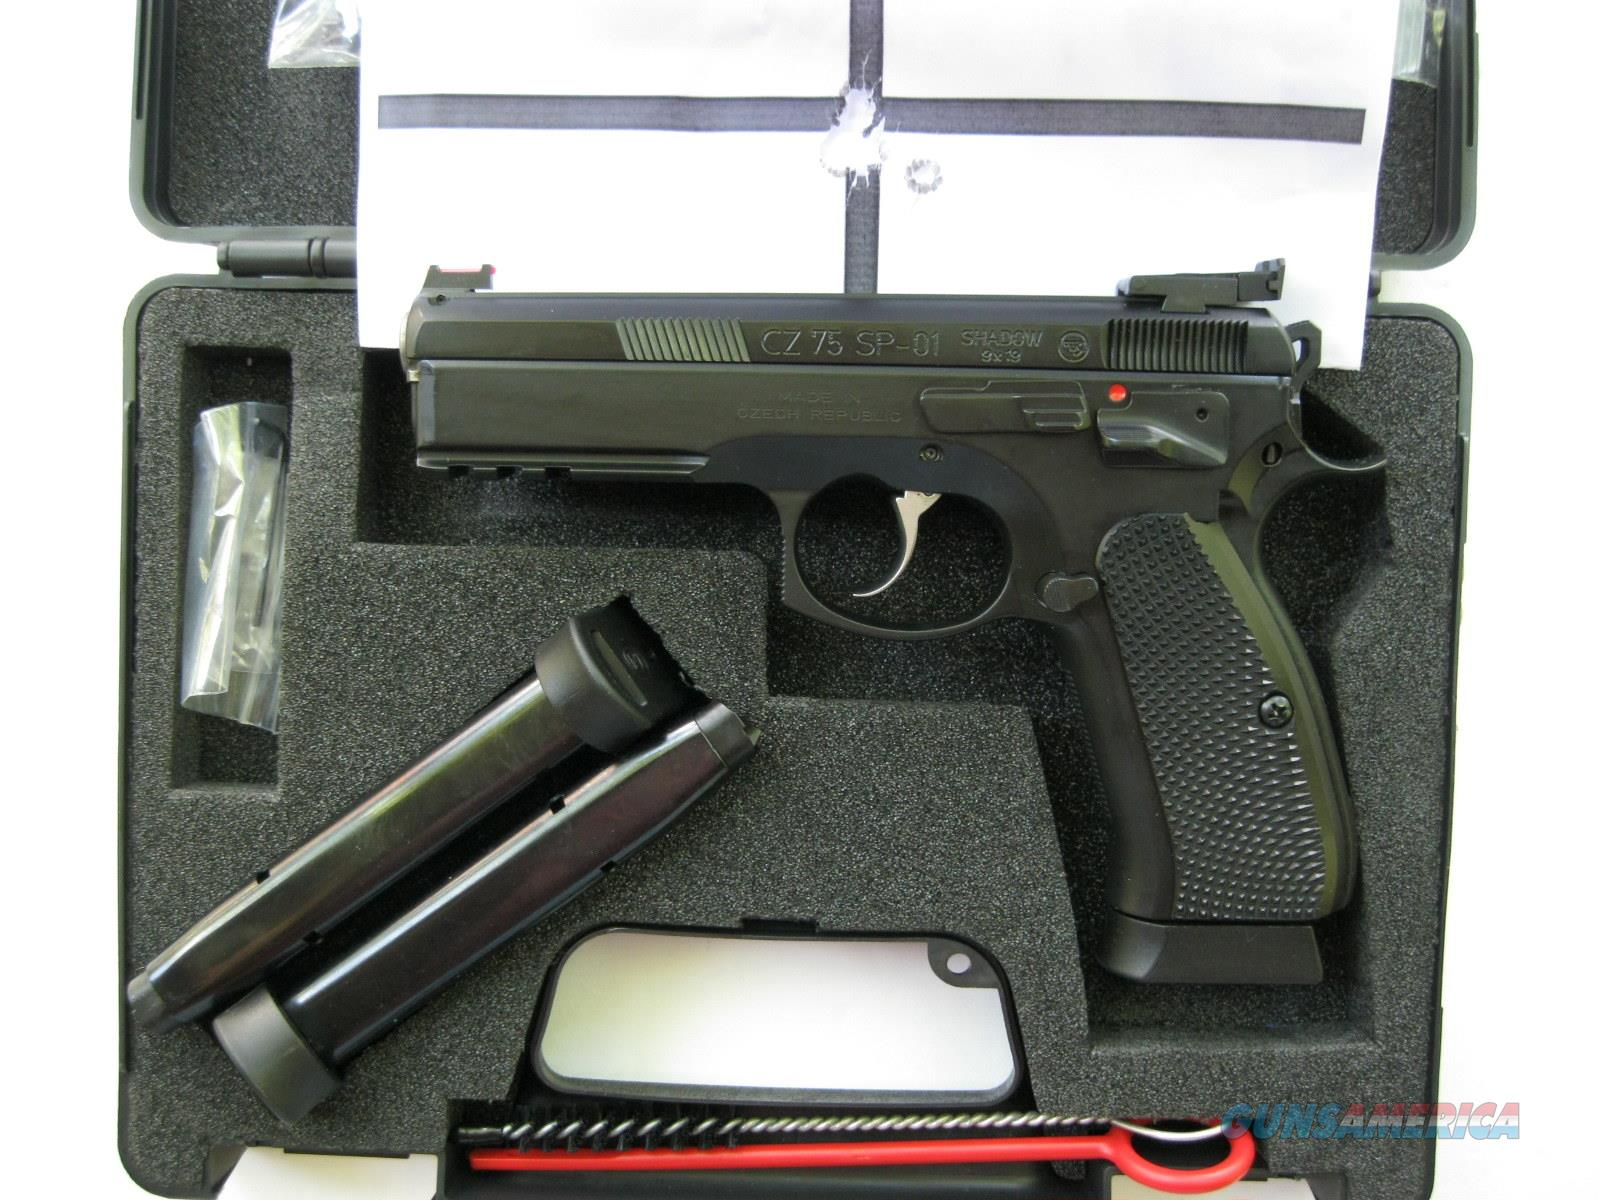 CZ Custom 75 SP-01 Shadow Target II 9mm FO 3 - 18 round Mags 91760 *NIB*  Guns > Pistols > CZ Pistols